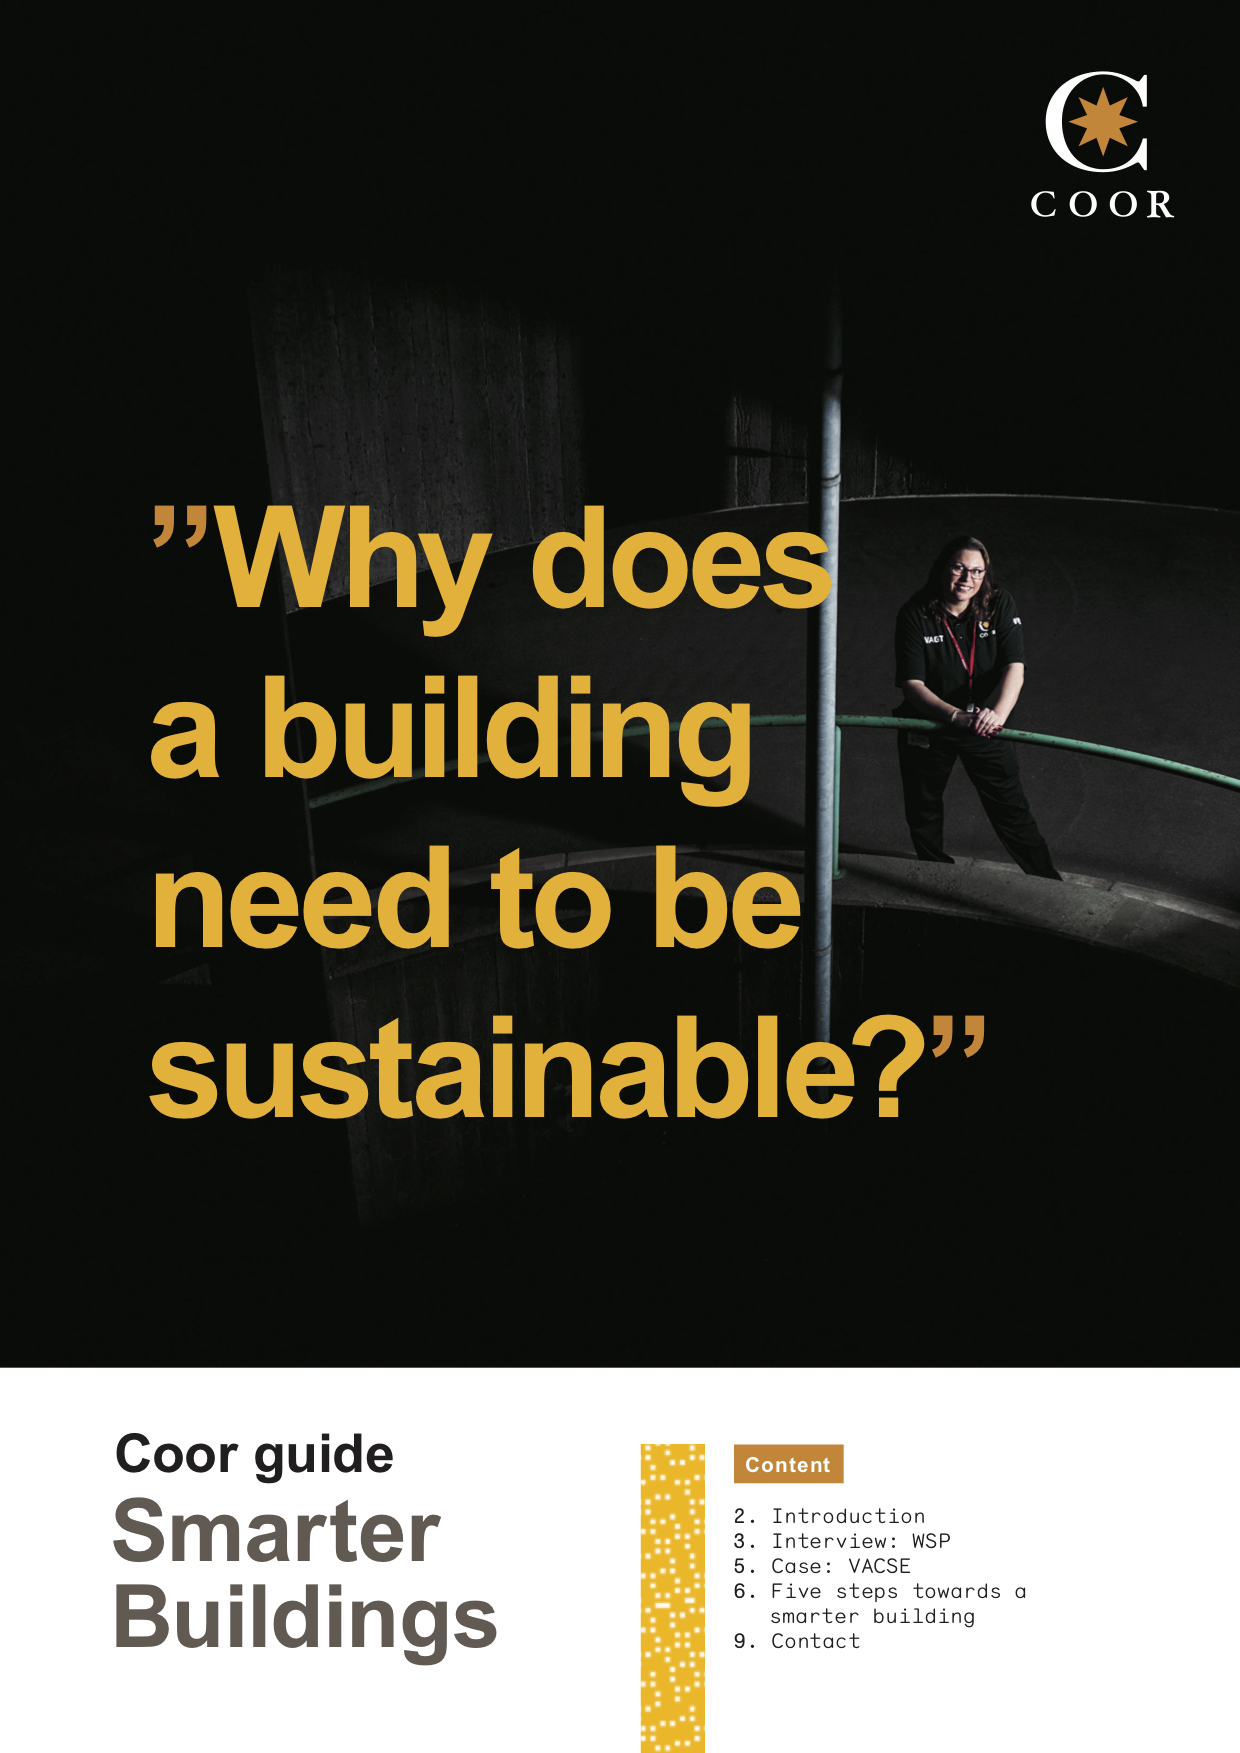 Smart building guide for property management | Coor